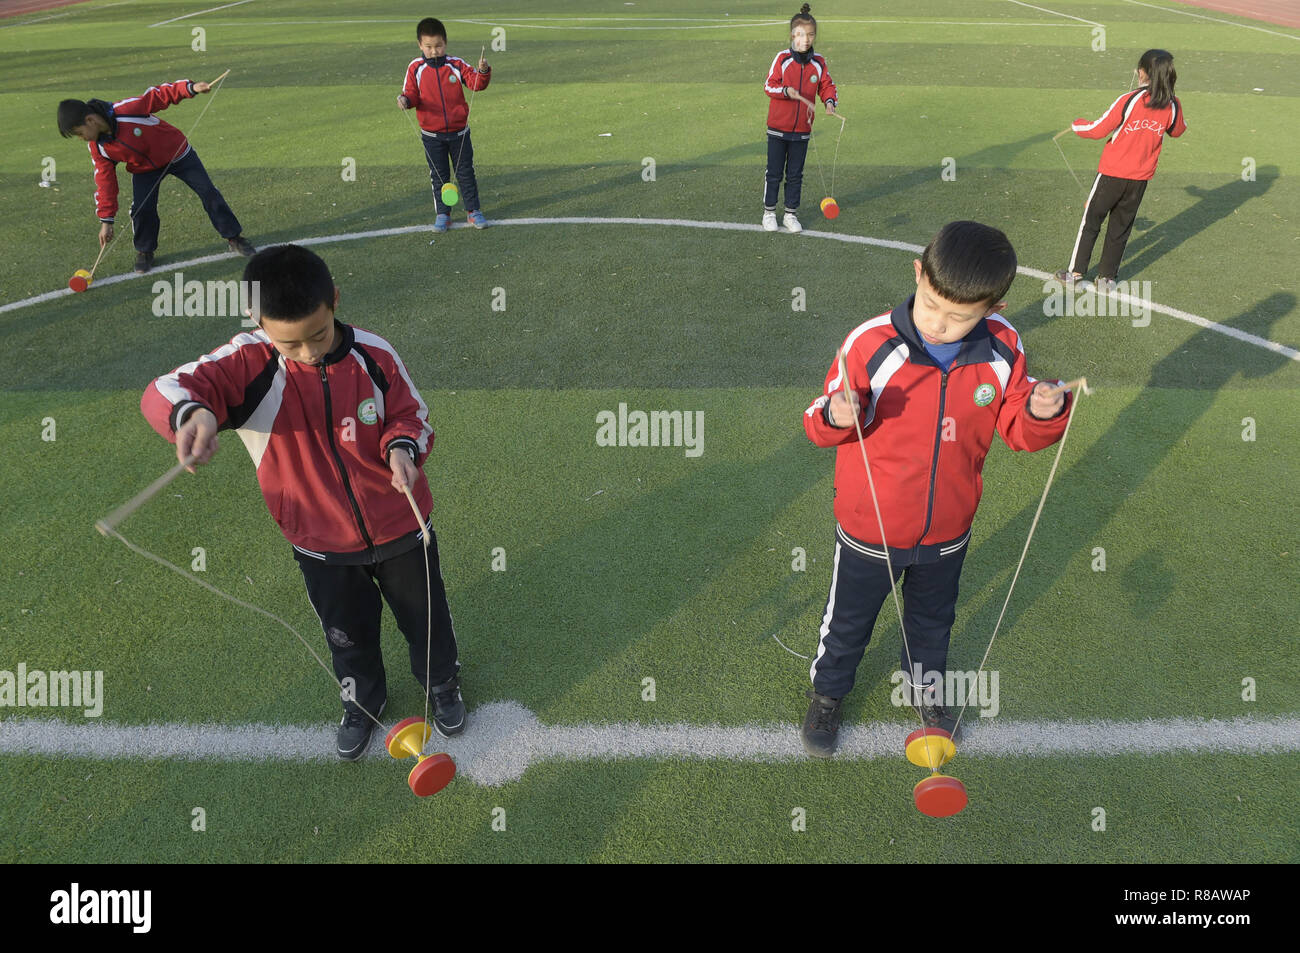 Gu'an, China's Hebei Province. 14th Dec, 2018. Students play diabolo at Nanzhaogezhuang primary school in Gu'an County, north China's Hebei Province, Dec. 14, 2018. Various extracurricular classes are provided in Nanzhaogezhuang primary school to enrich the school life of students. Credit: Lu Peng/Xinhua/Alamy Live News - Stock Image